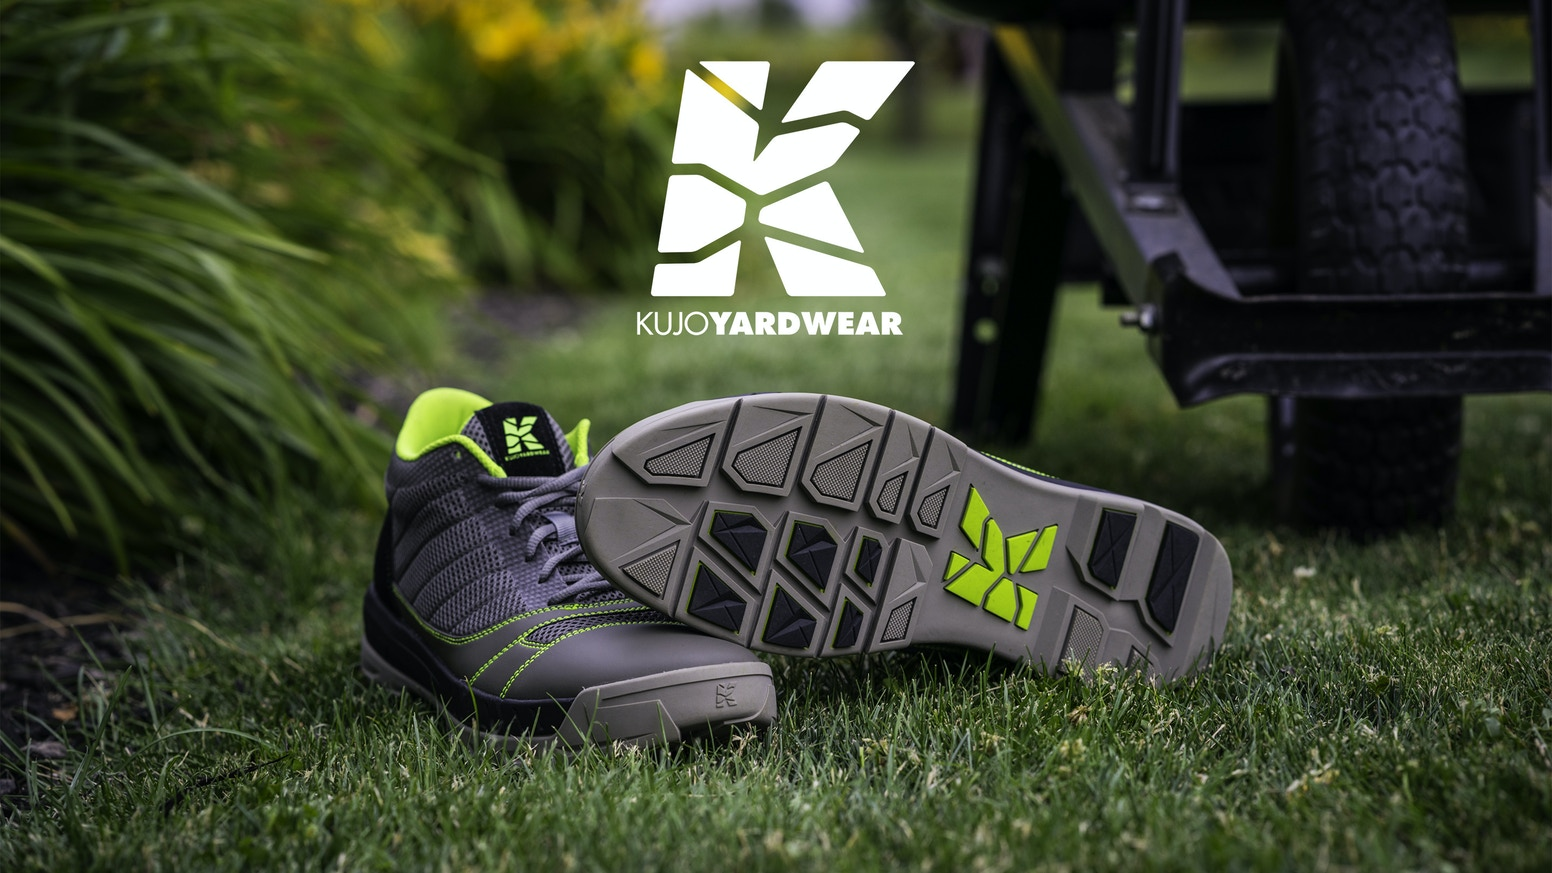 Ultimate All-Purpose Yard Shoe has the durability of a work boot, grip of a hiking shoe, and the comfort and light weight of a sneaker.